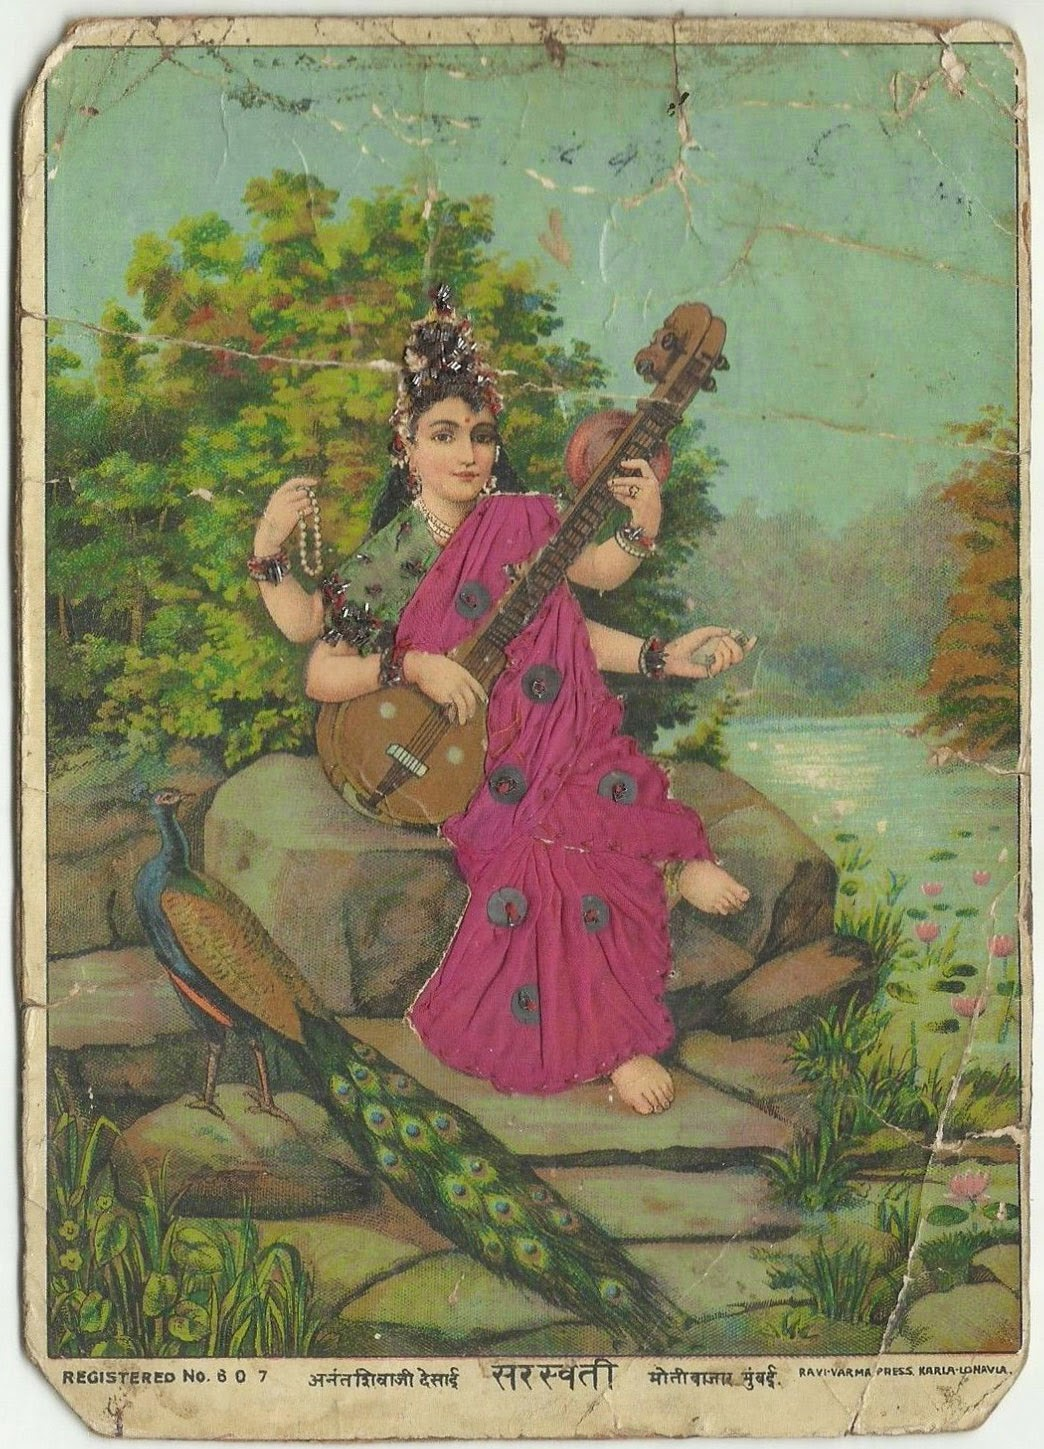 Saraswati by Ravi Varma Press